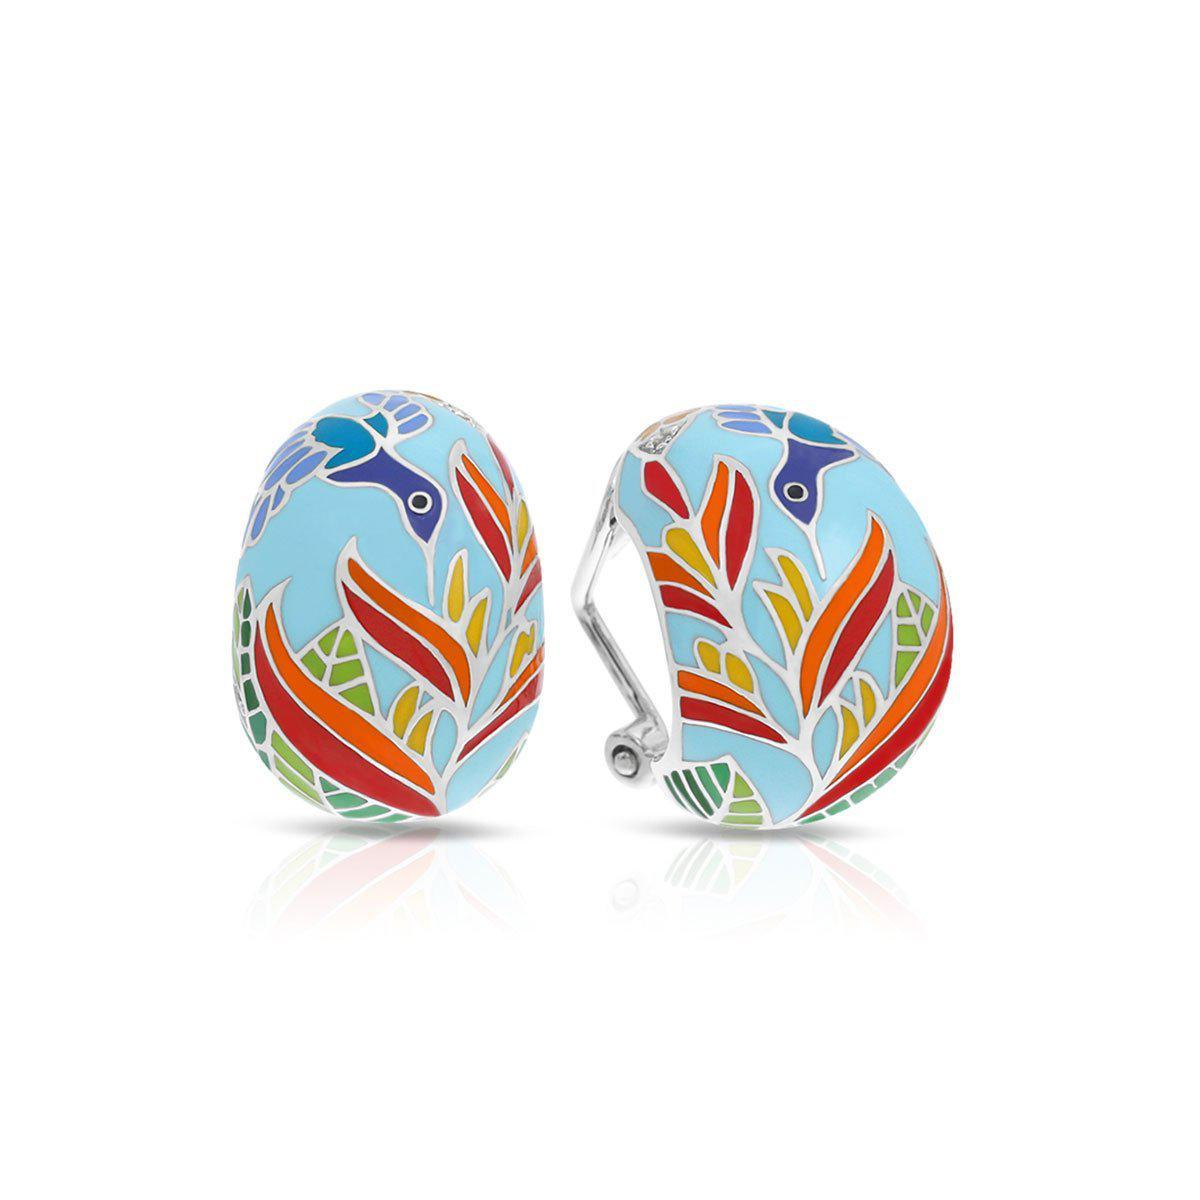 Hummingbird Earrings by Belle Etoile